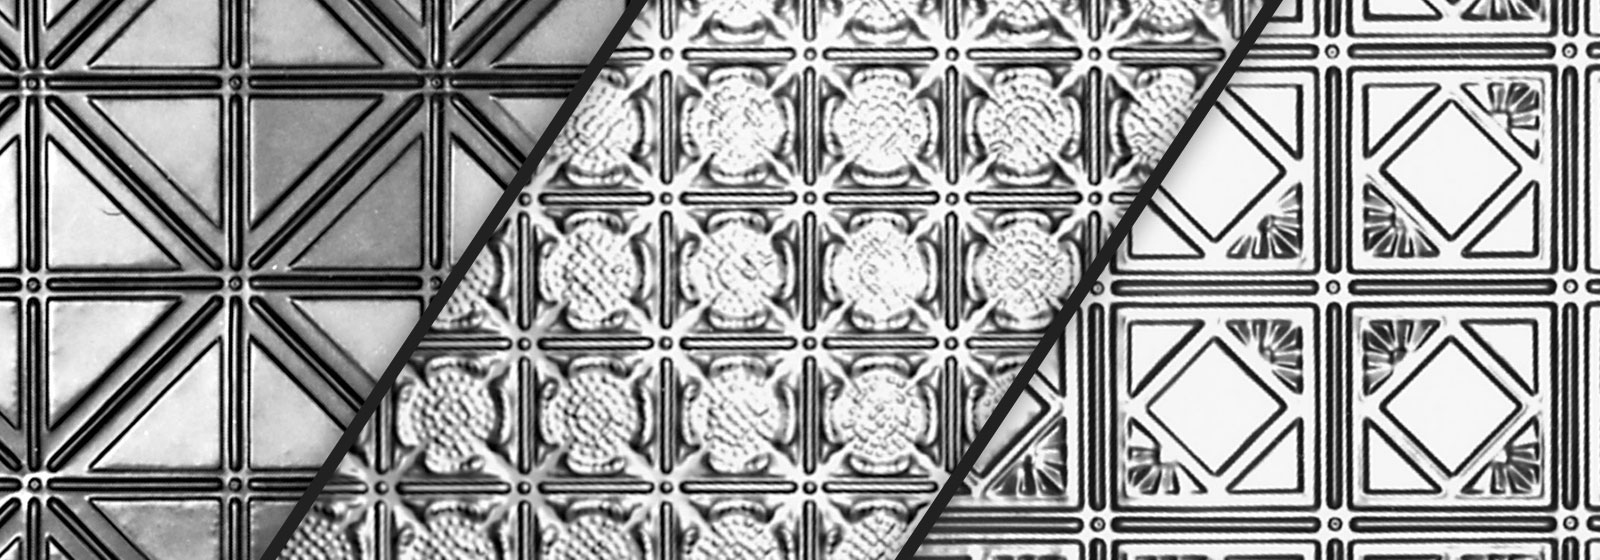 Tin Ceiling Tile Patterns